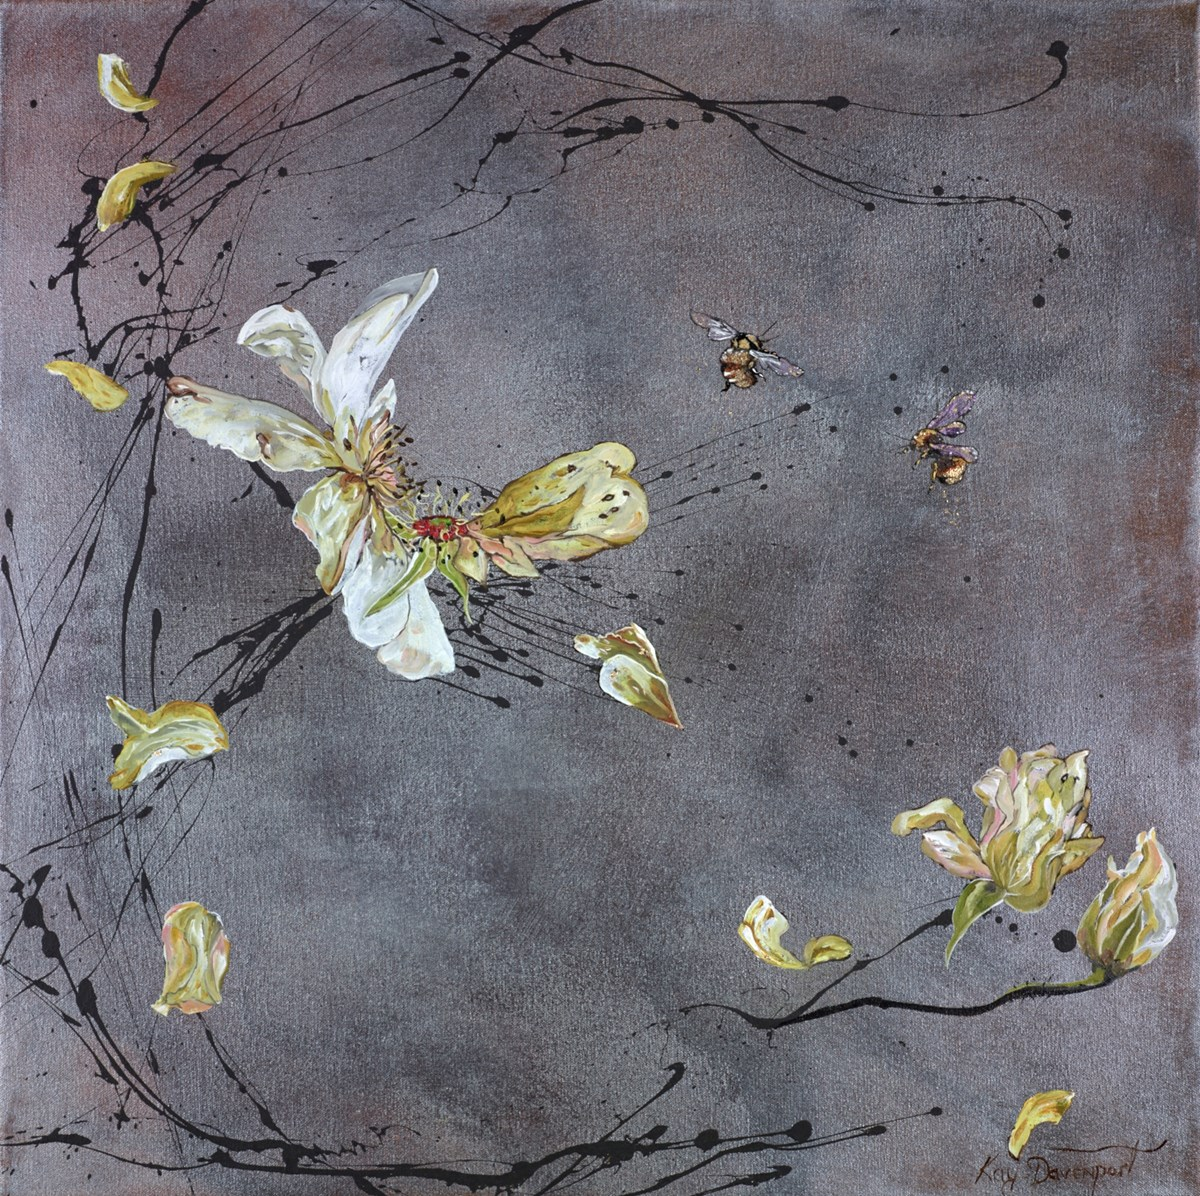 Last Bees of Summer by kay davenport -  sized 24x24 inches. Available from Whitewall Galleries